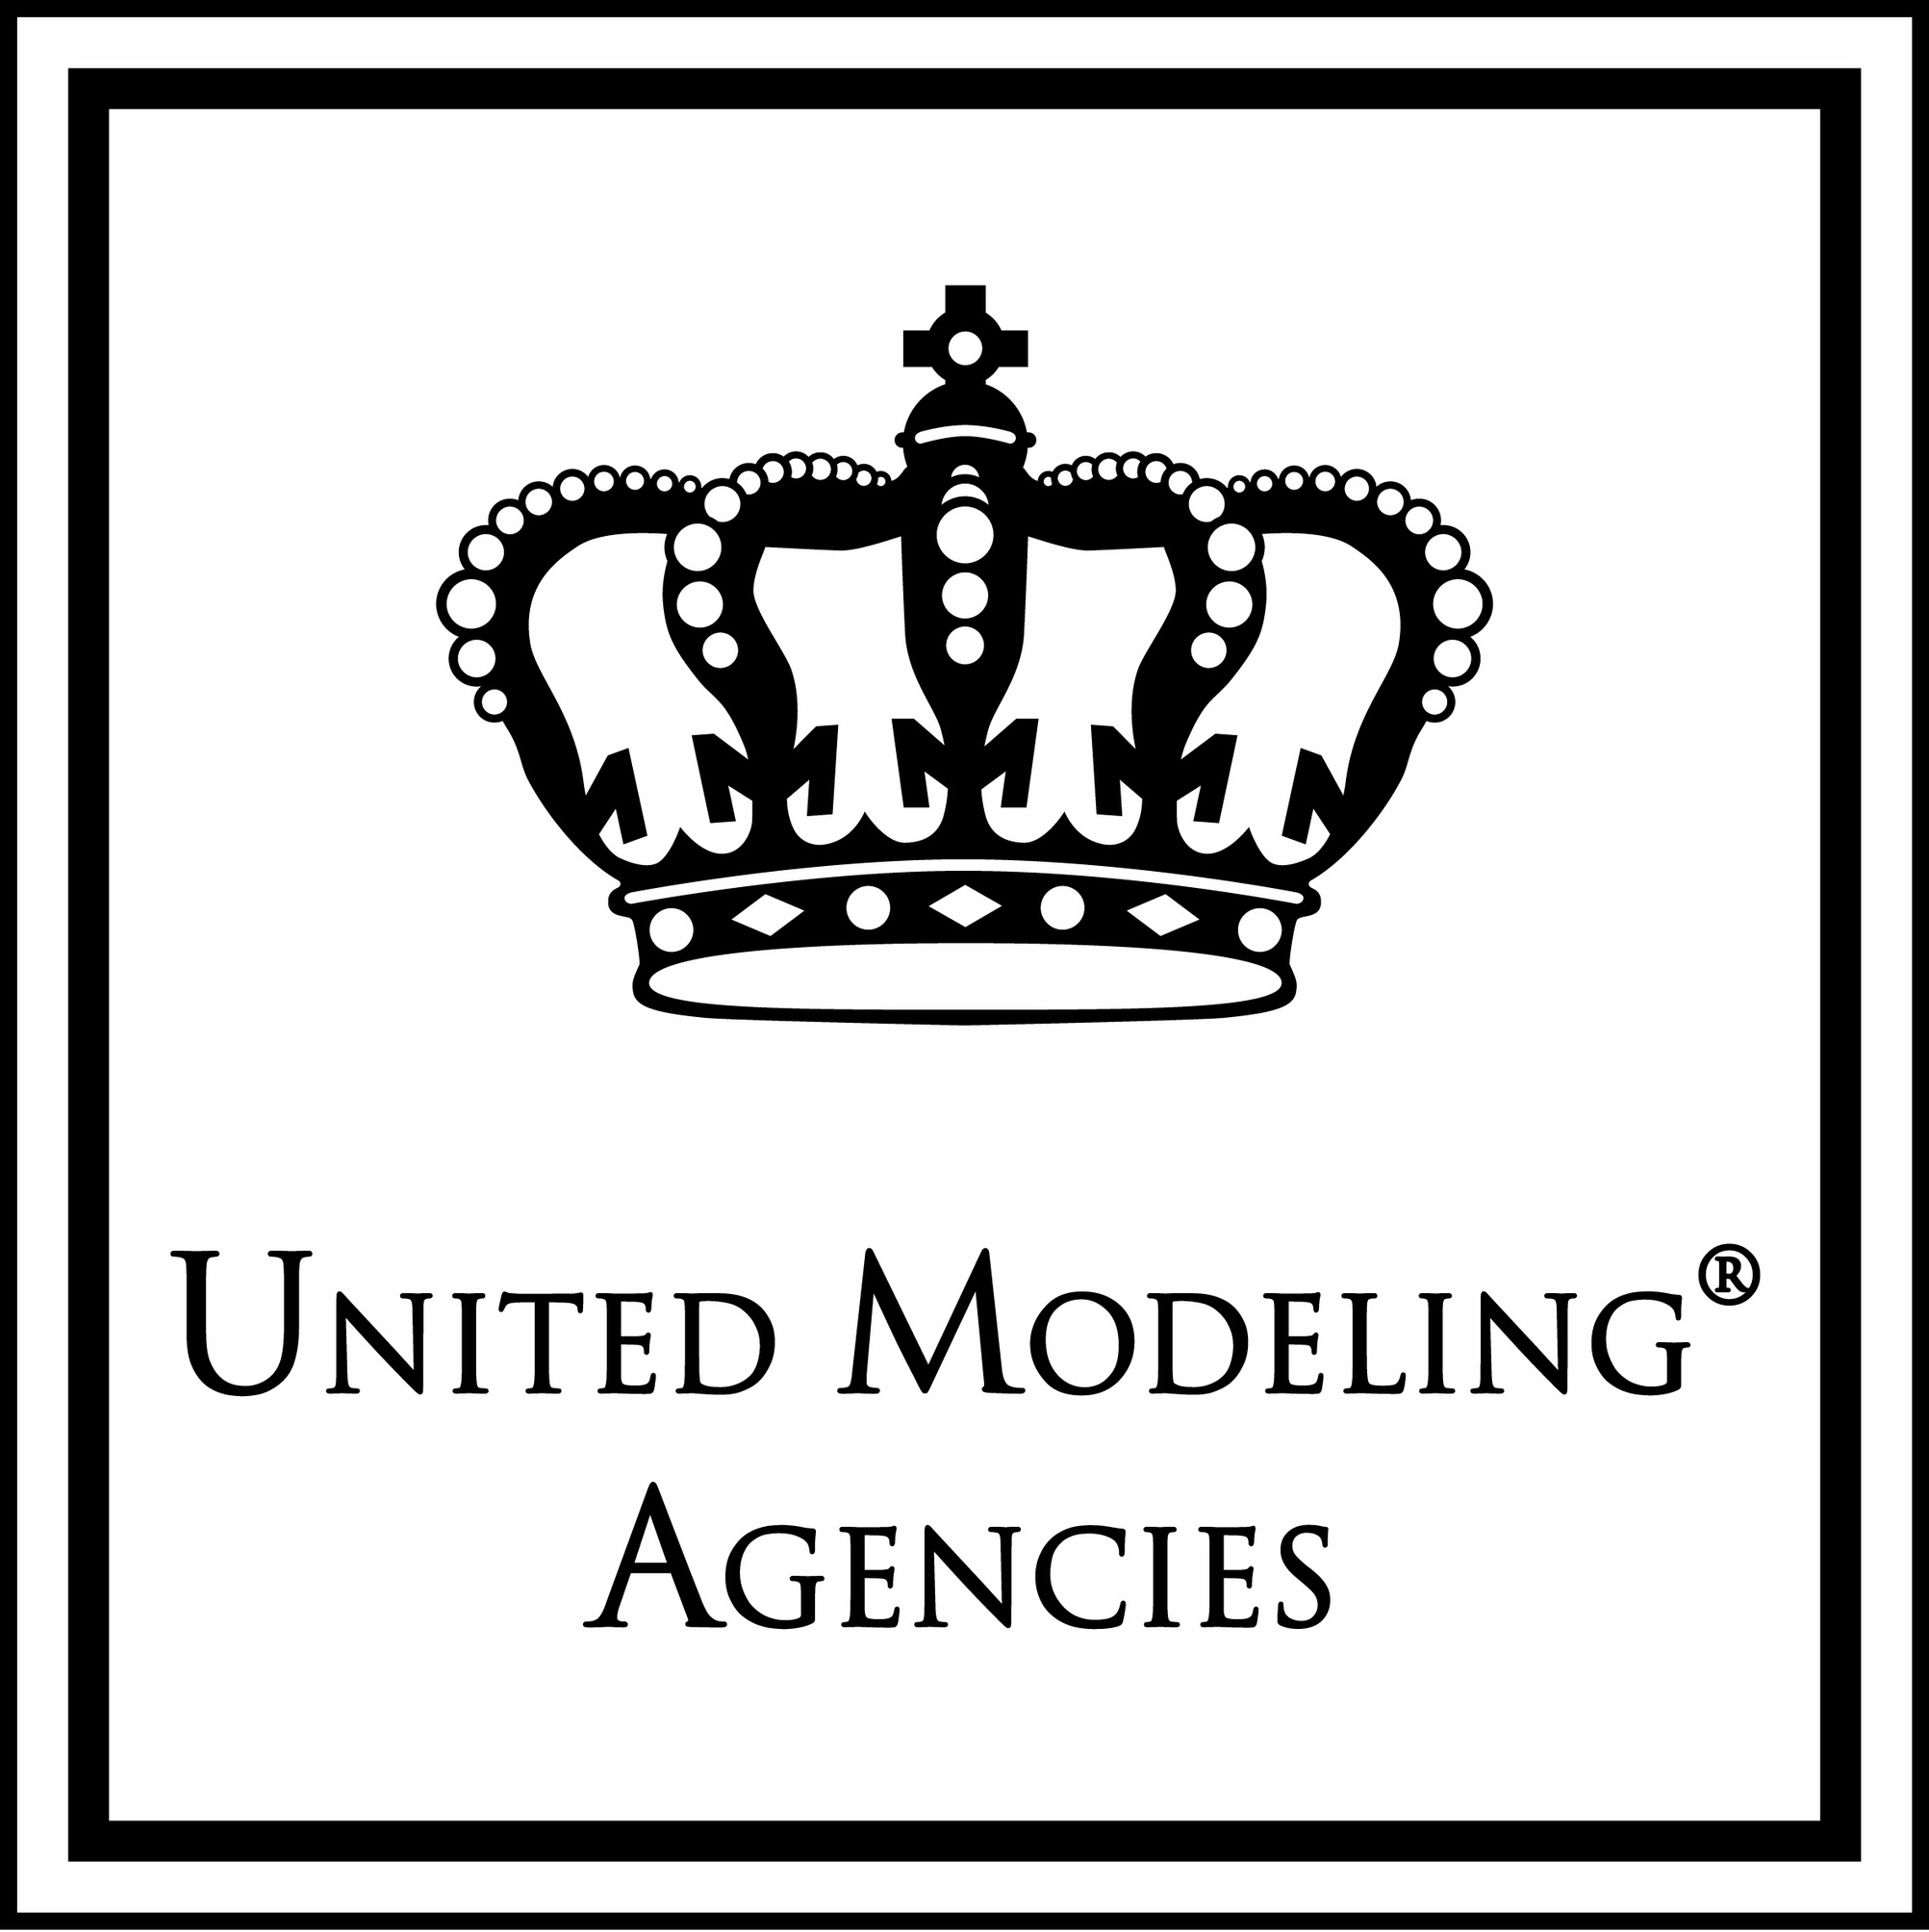 UNITED MODELING® AGENCIES